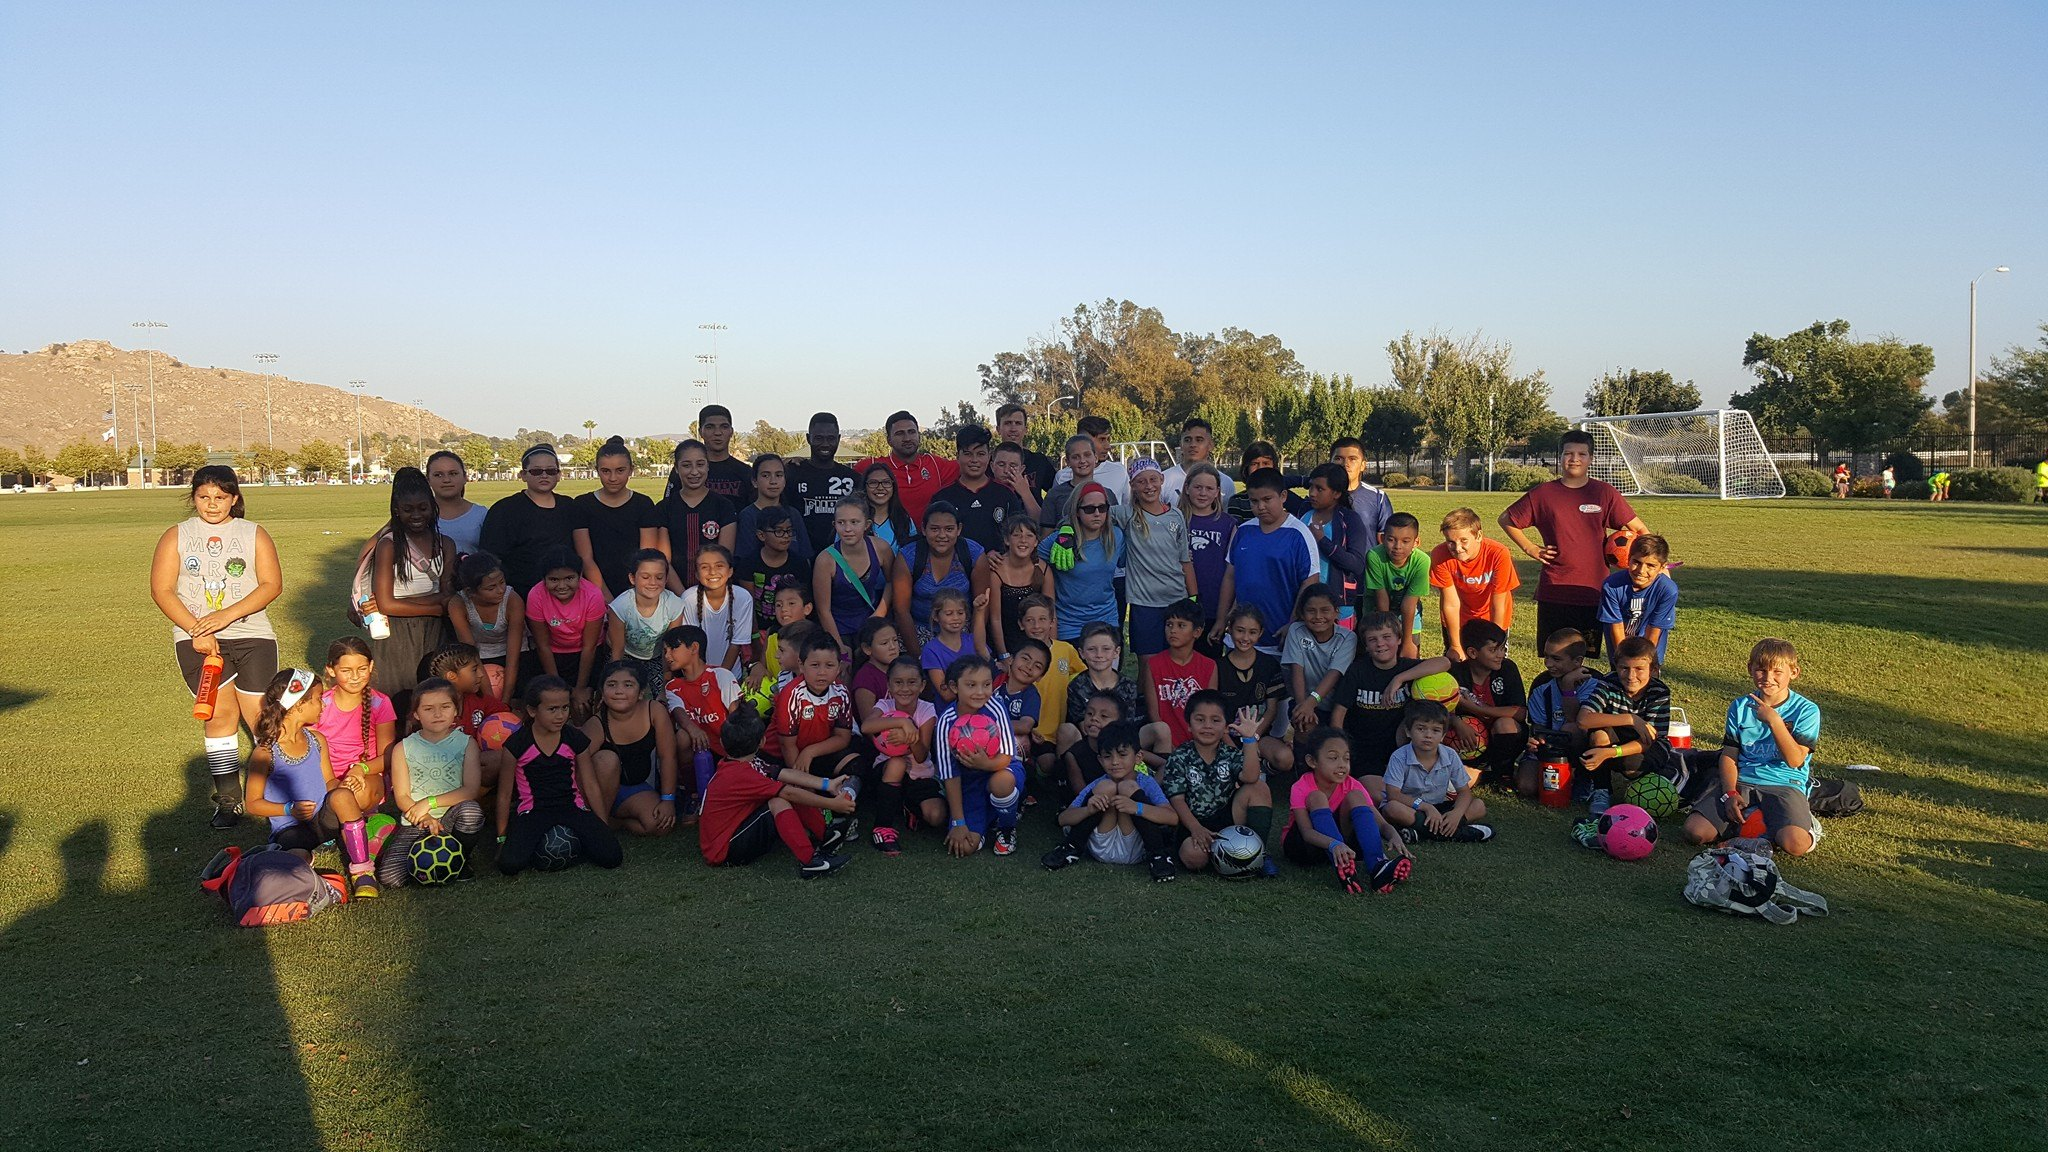 Our 63 attendees and some of the Ontario Fury players!